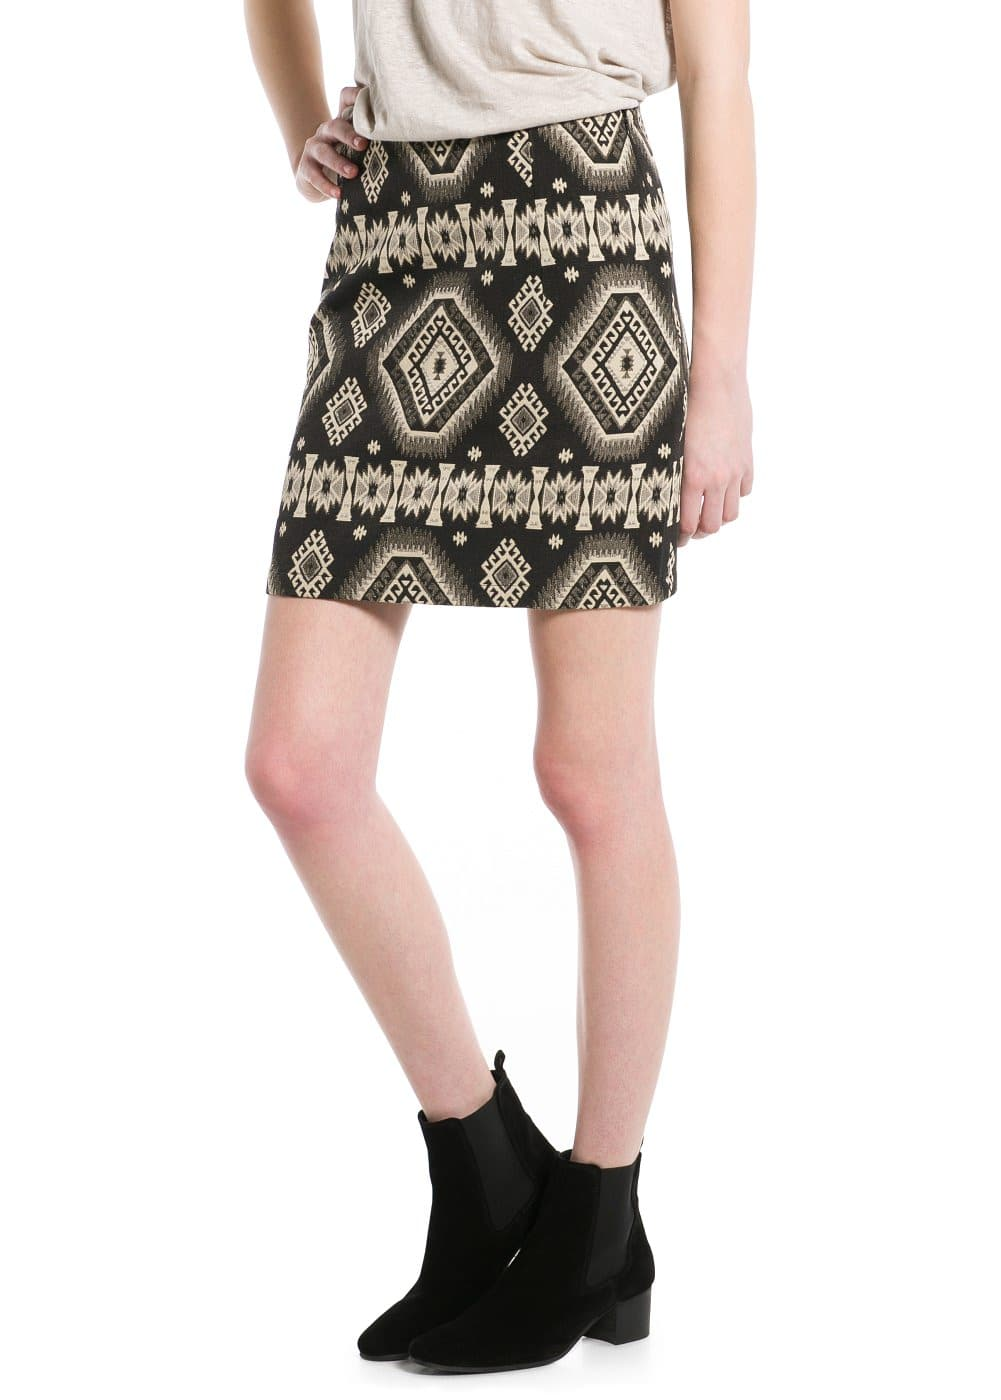 Ethnic jacquard skirt